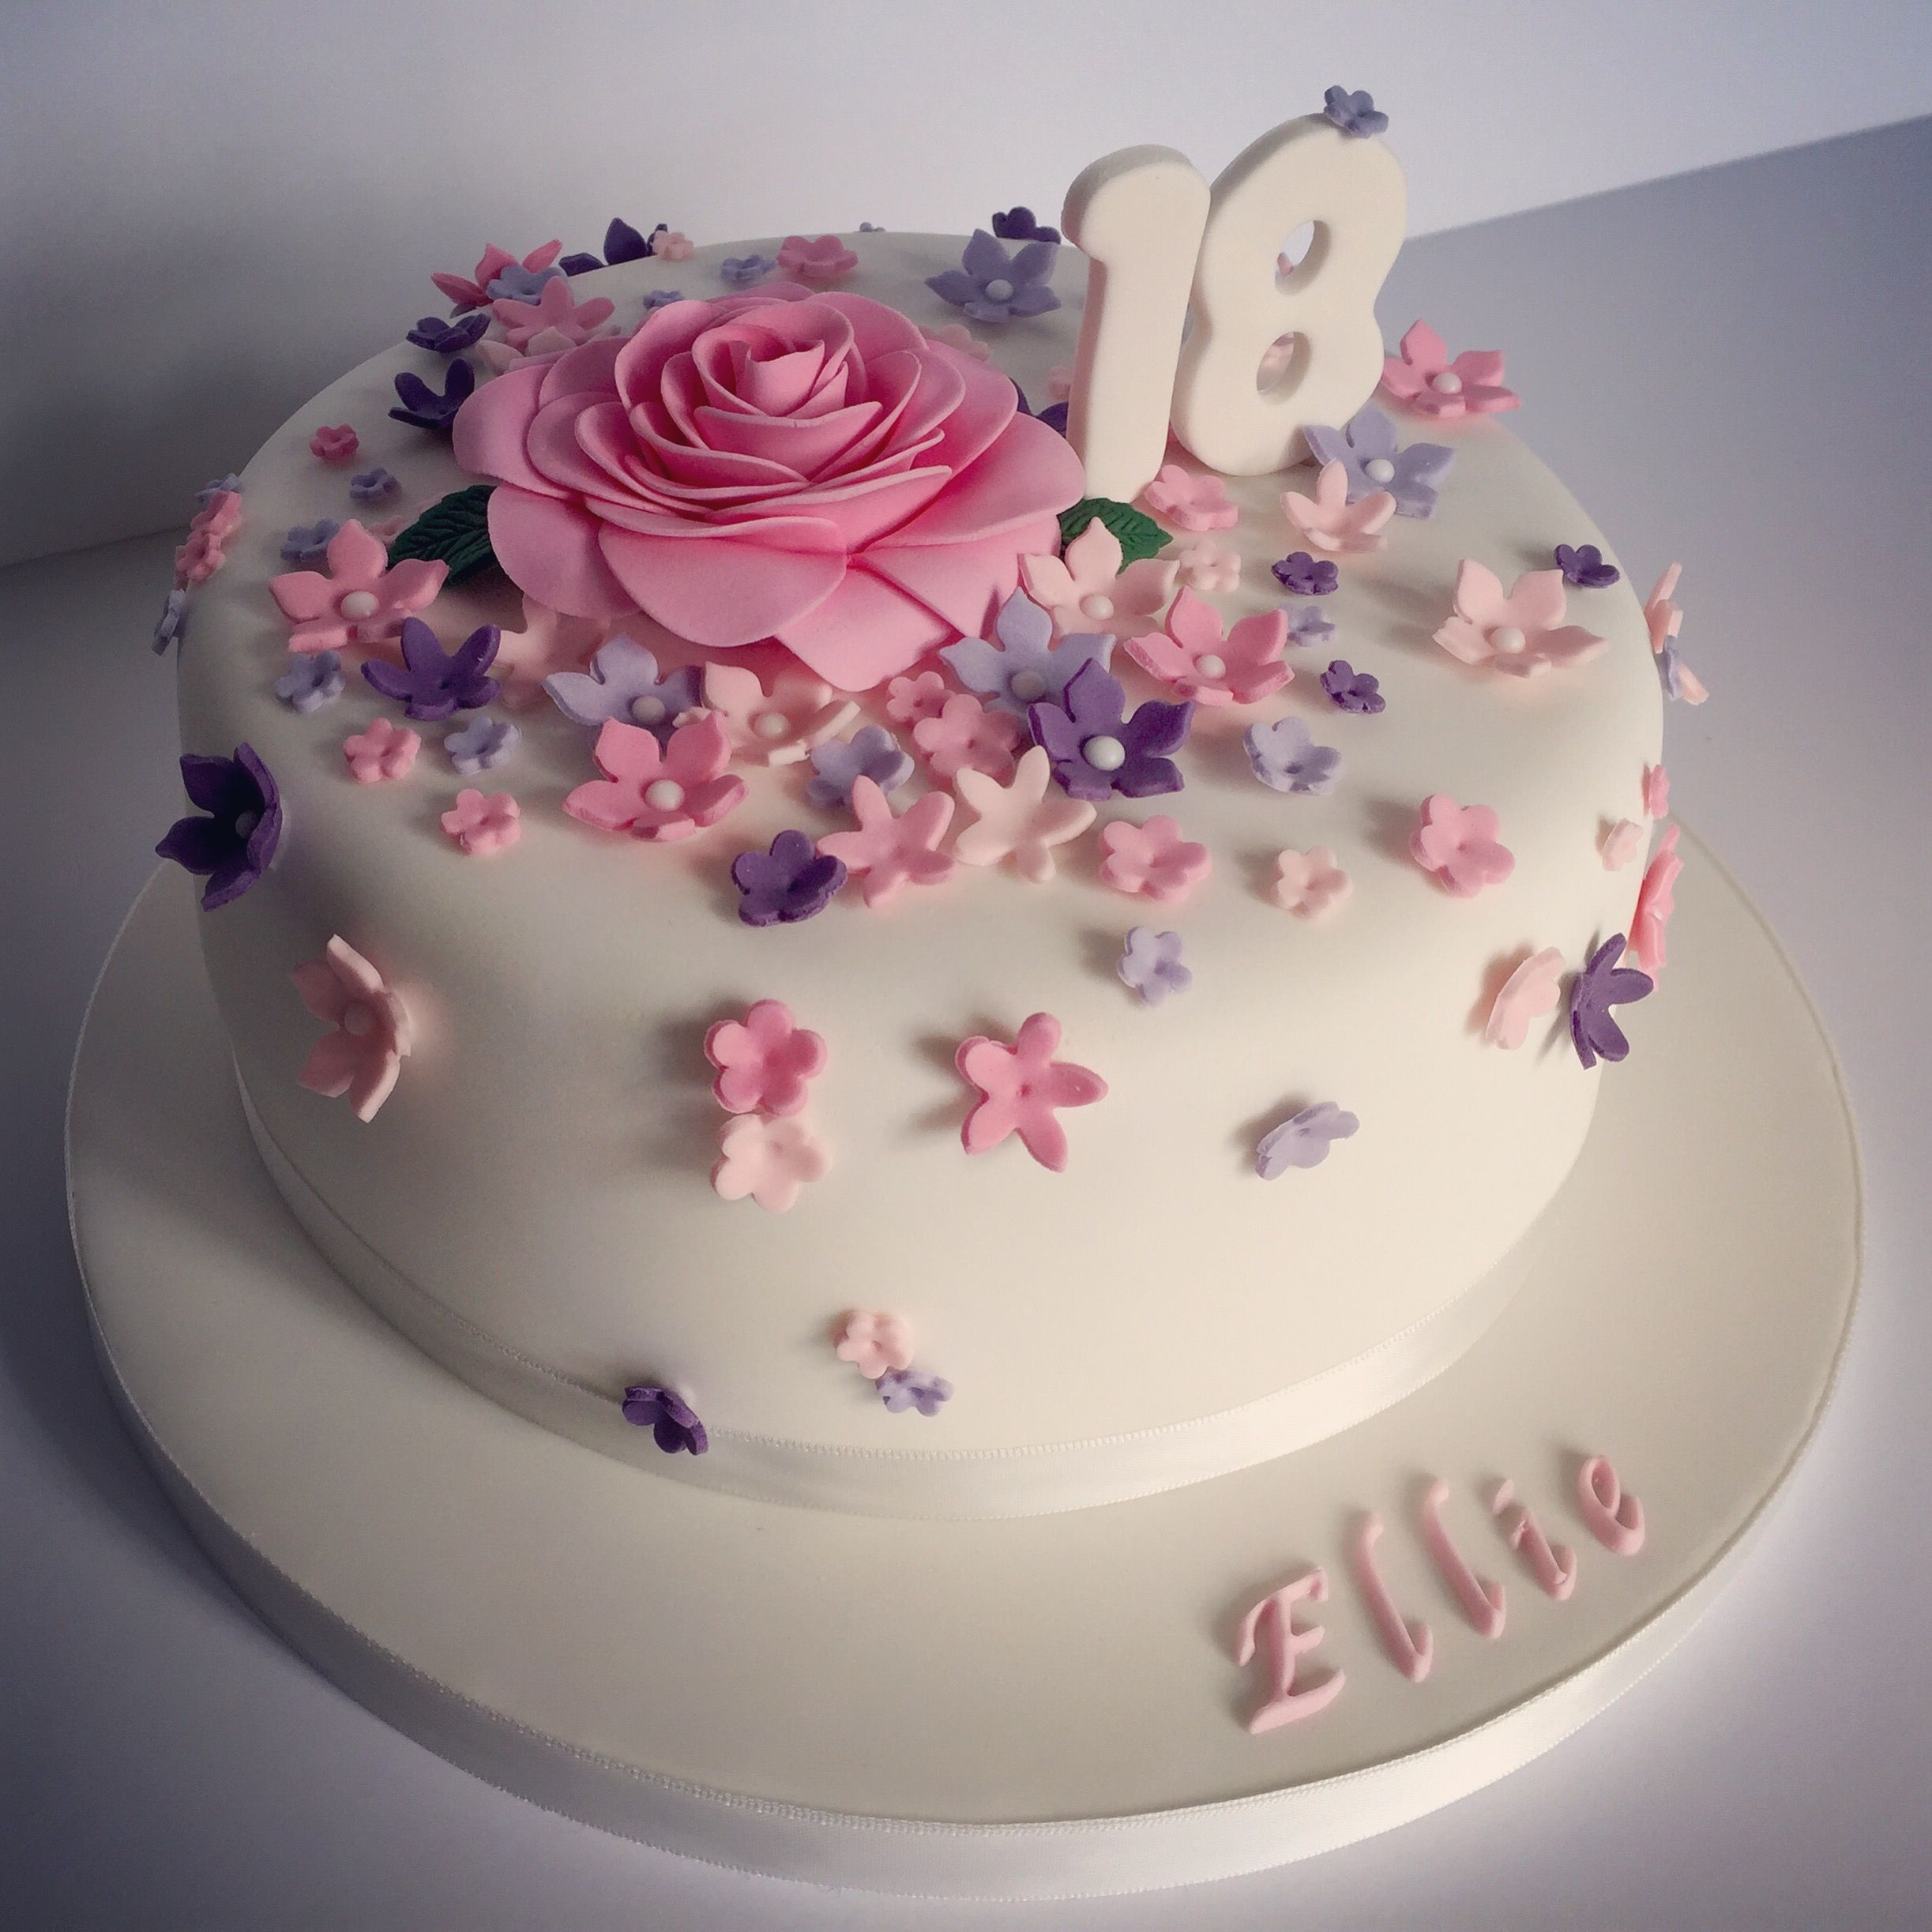 Birthday Cake Designs Pretty 18th Birthday Cake For Pretty Girl Design Elina Prawito